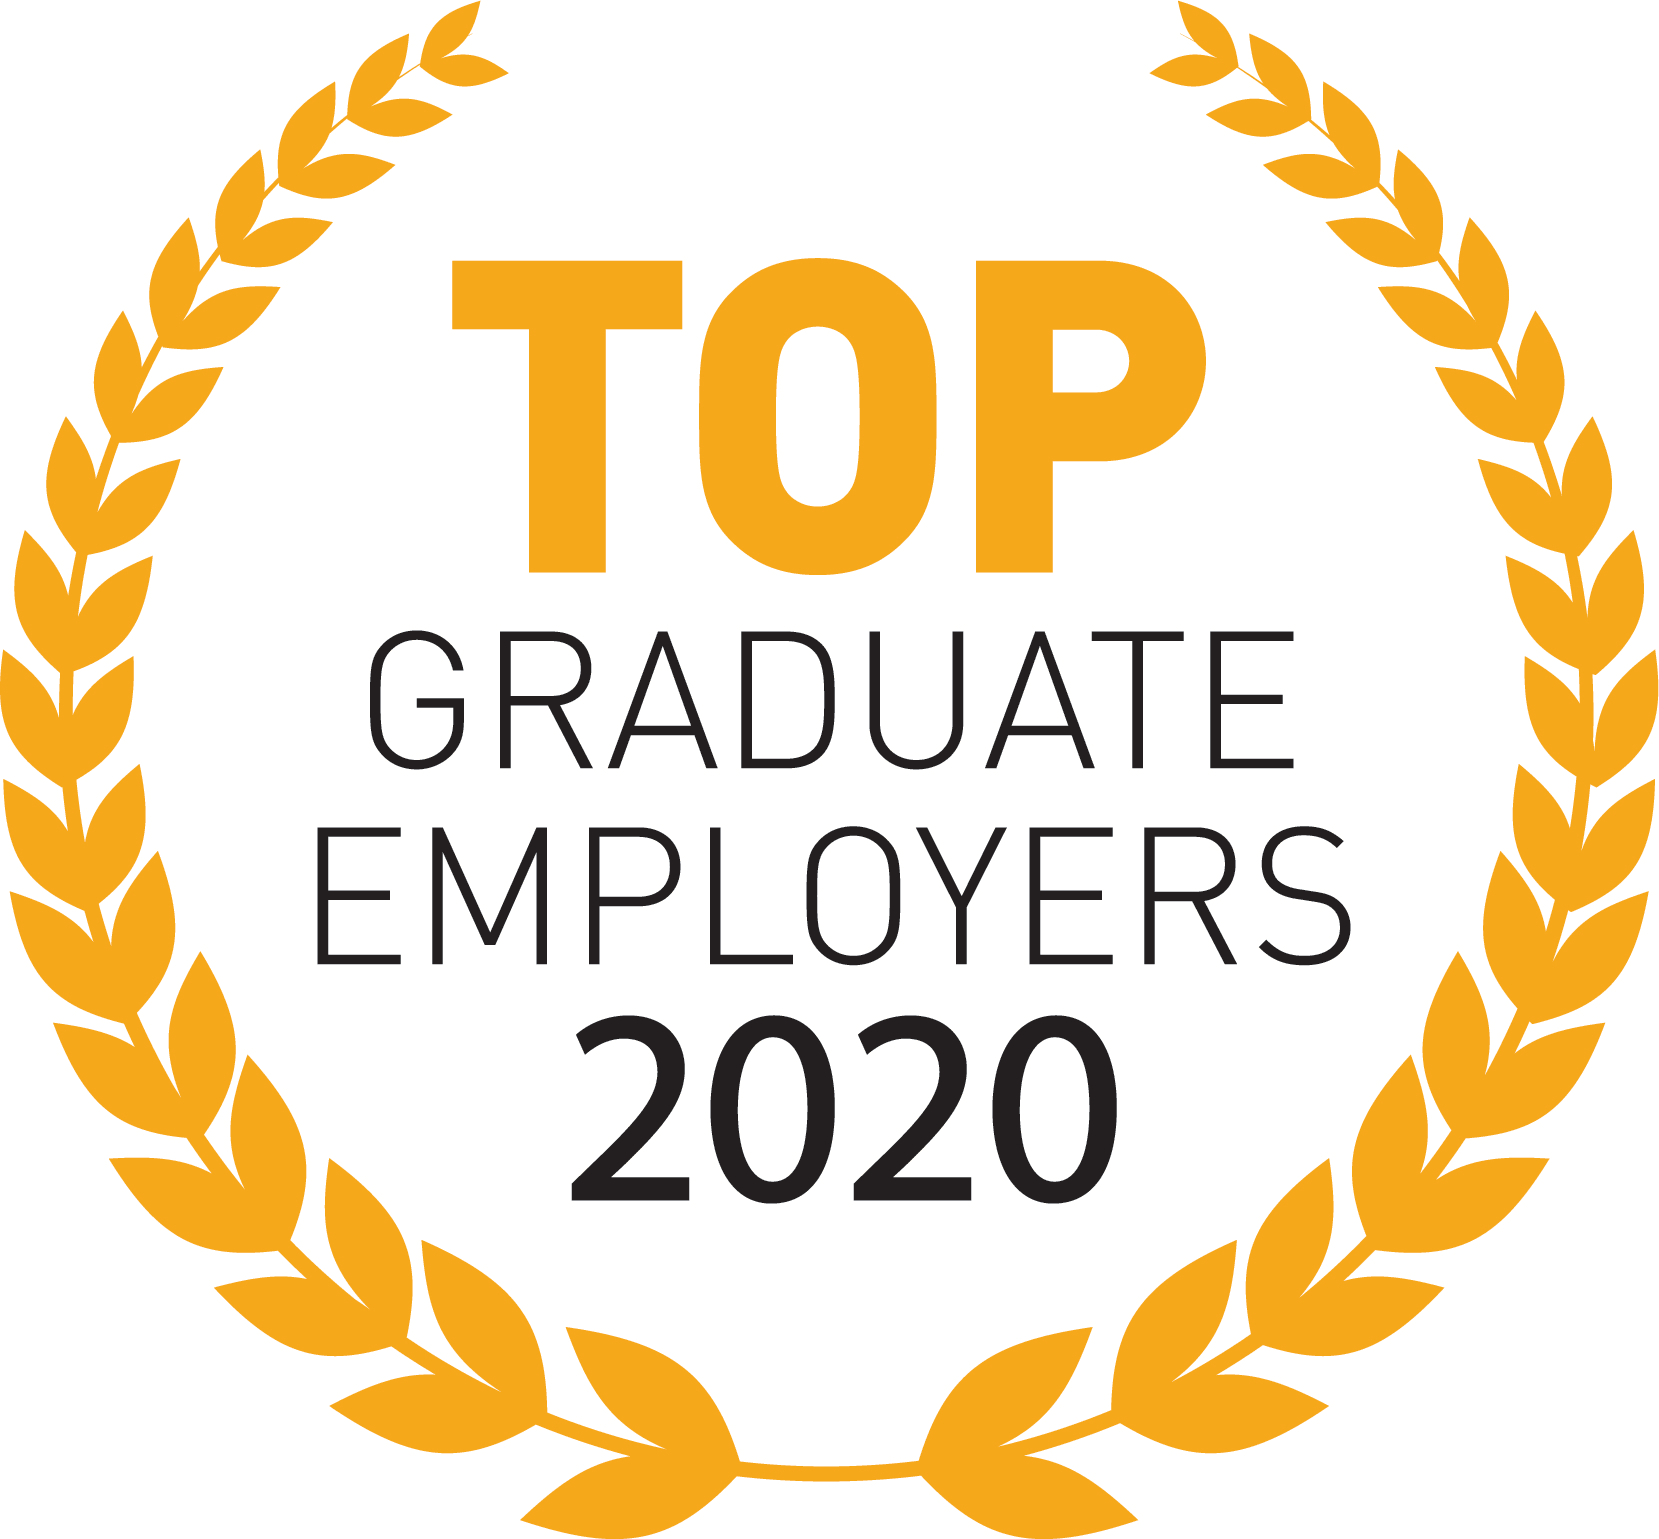 RSM is a recognised Top Graduate Employeer